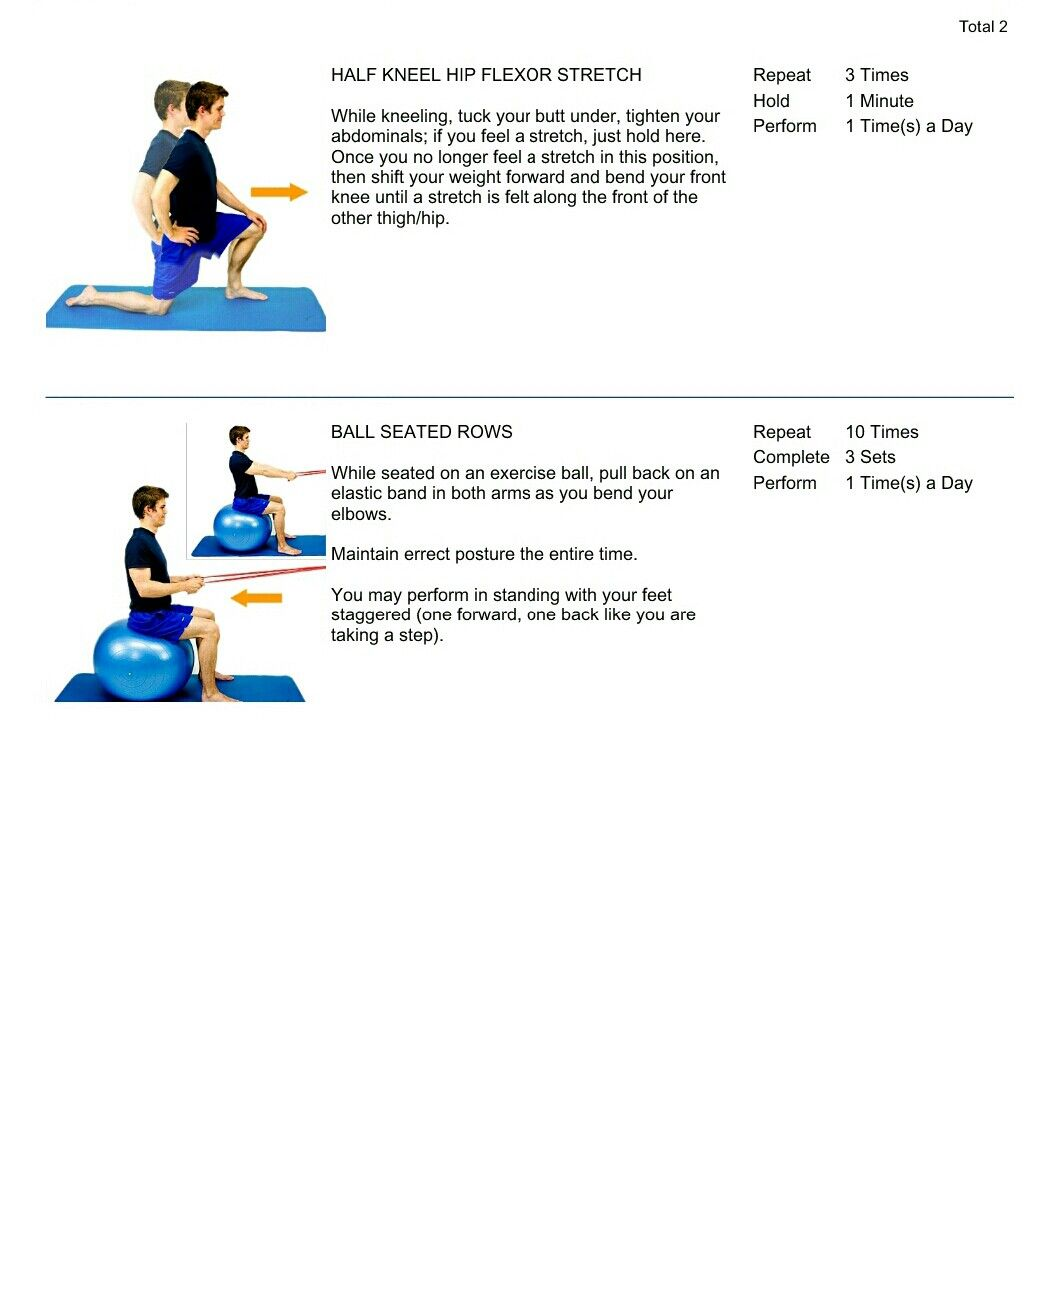 Physical Therapy Exercises 1 4 18 Page 1